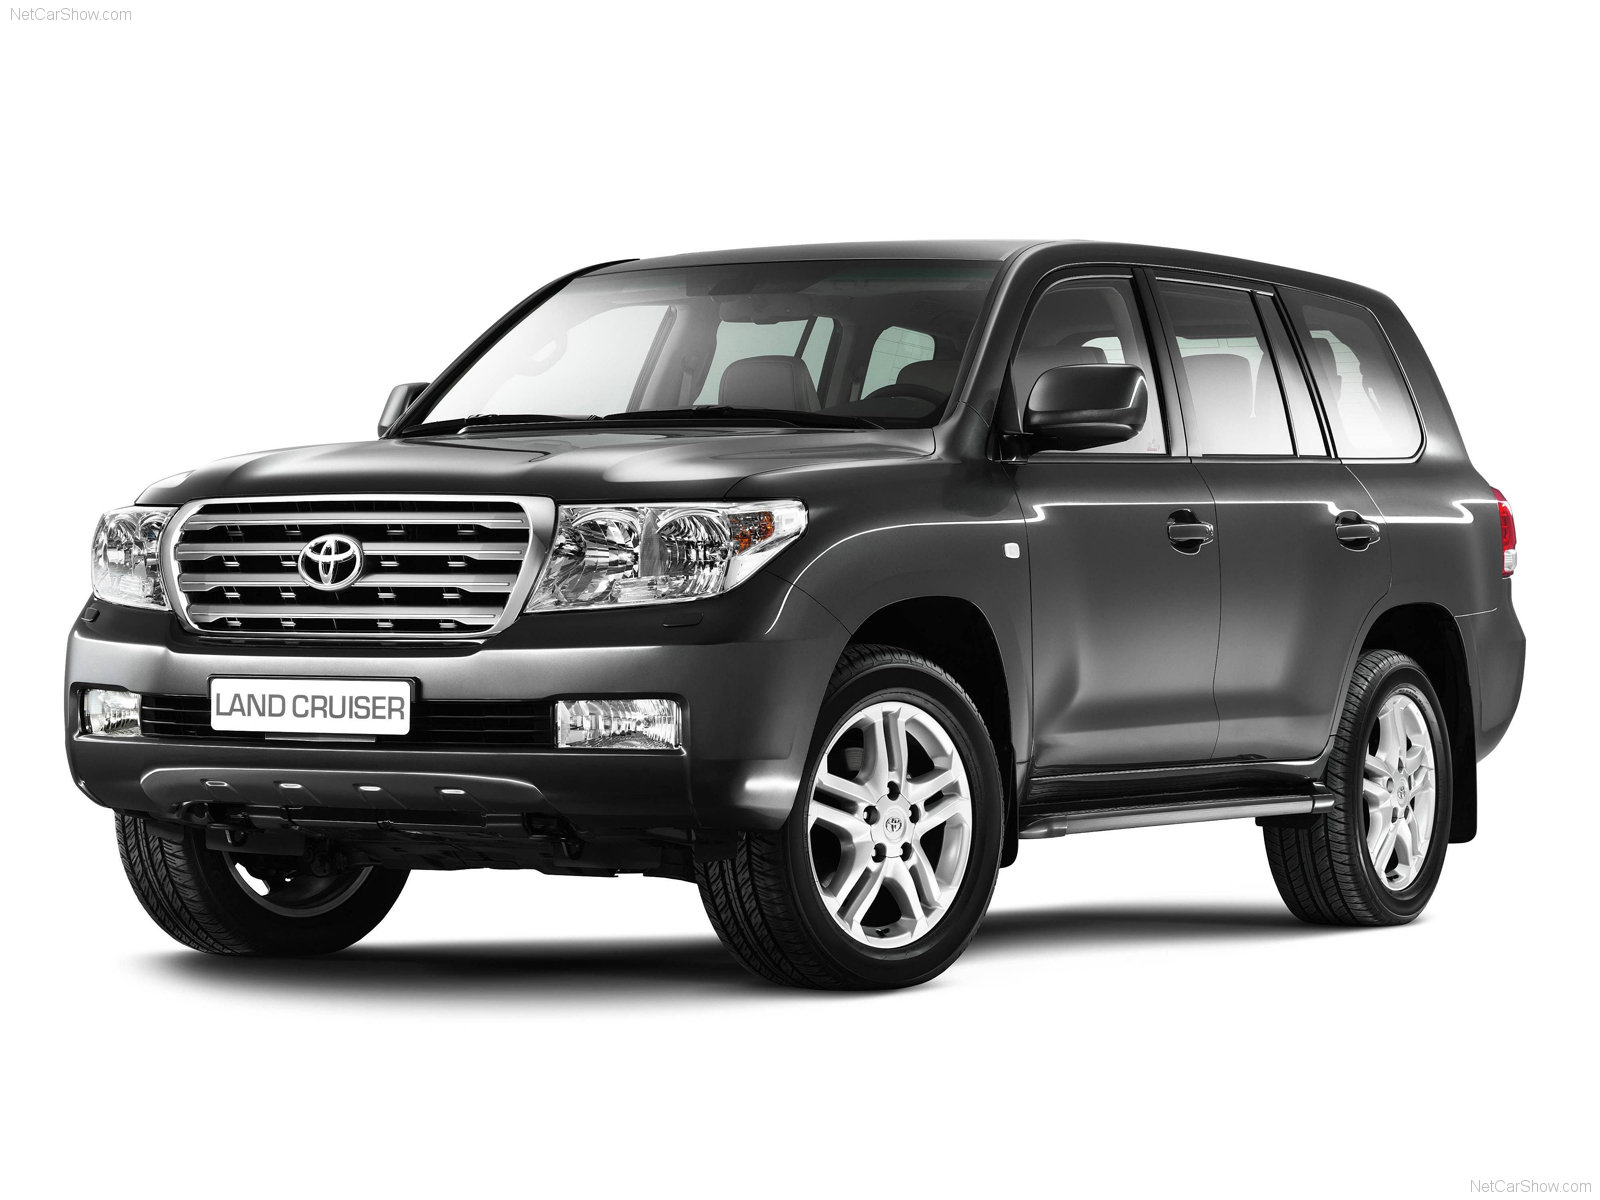 Land Cruiser v8 Wallpapers Toyota Land Cruiser v8 Photo